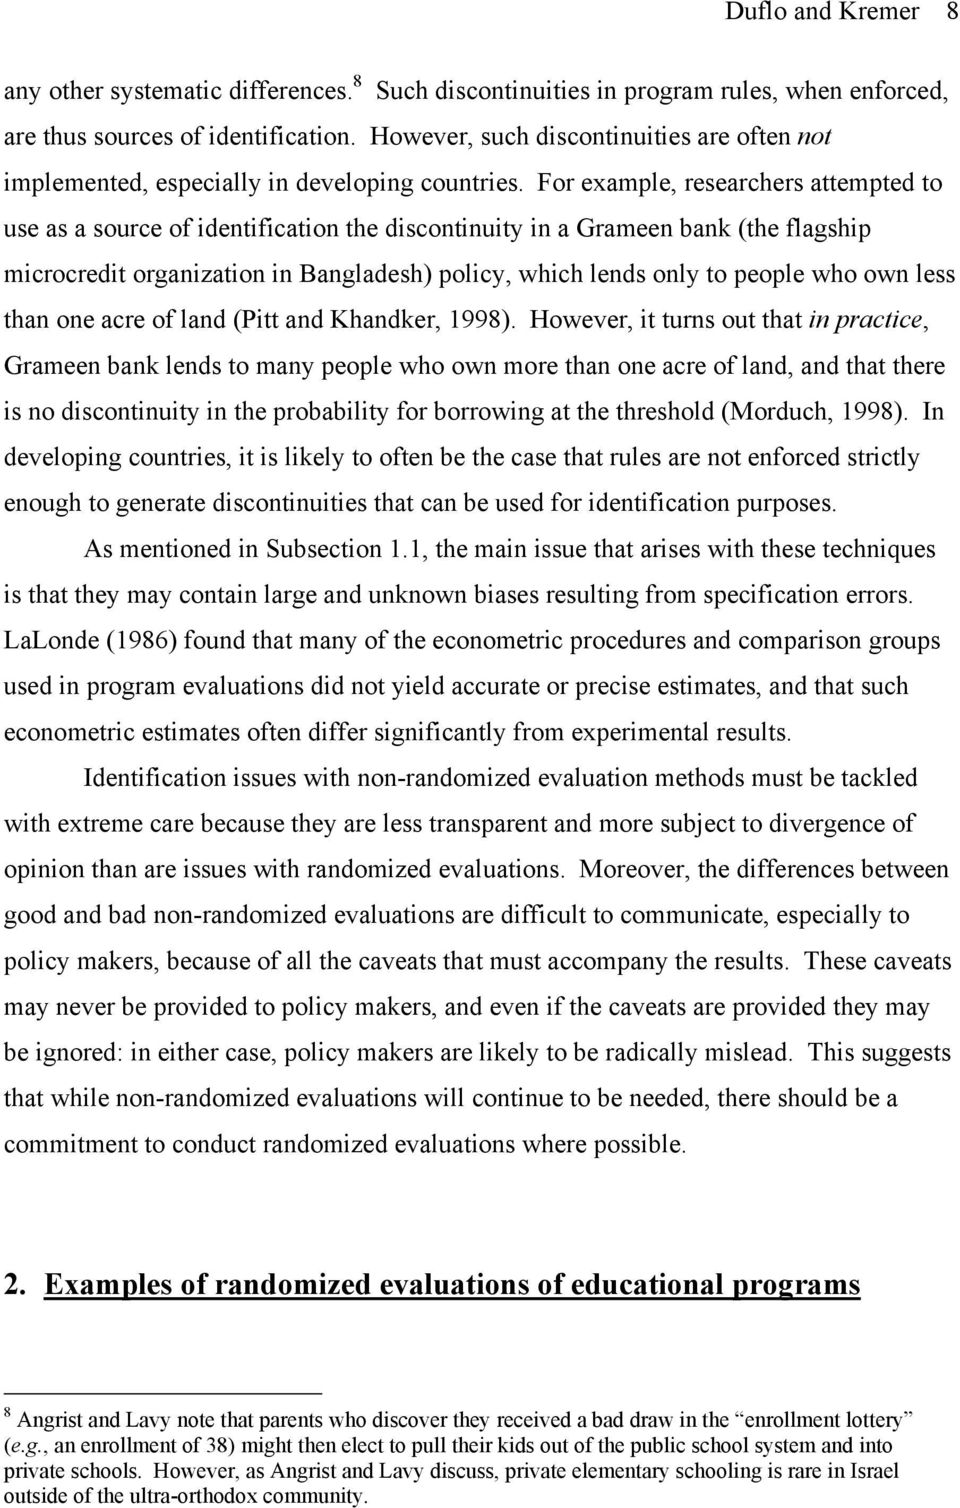 For example, researchers attempted to use as a source of identification the discontinuity in a Grameen bank (the flagship microcredit organization in Bangladesh) policy, which lends only to people